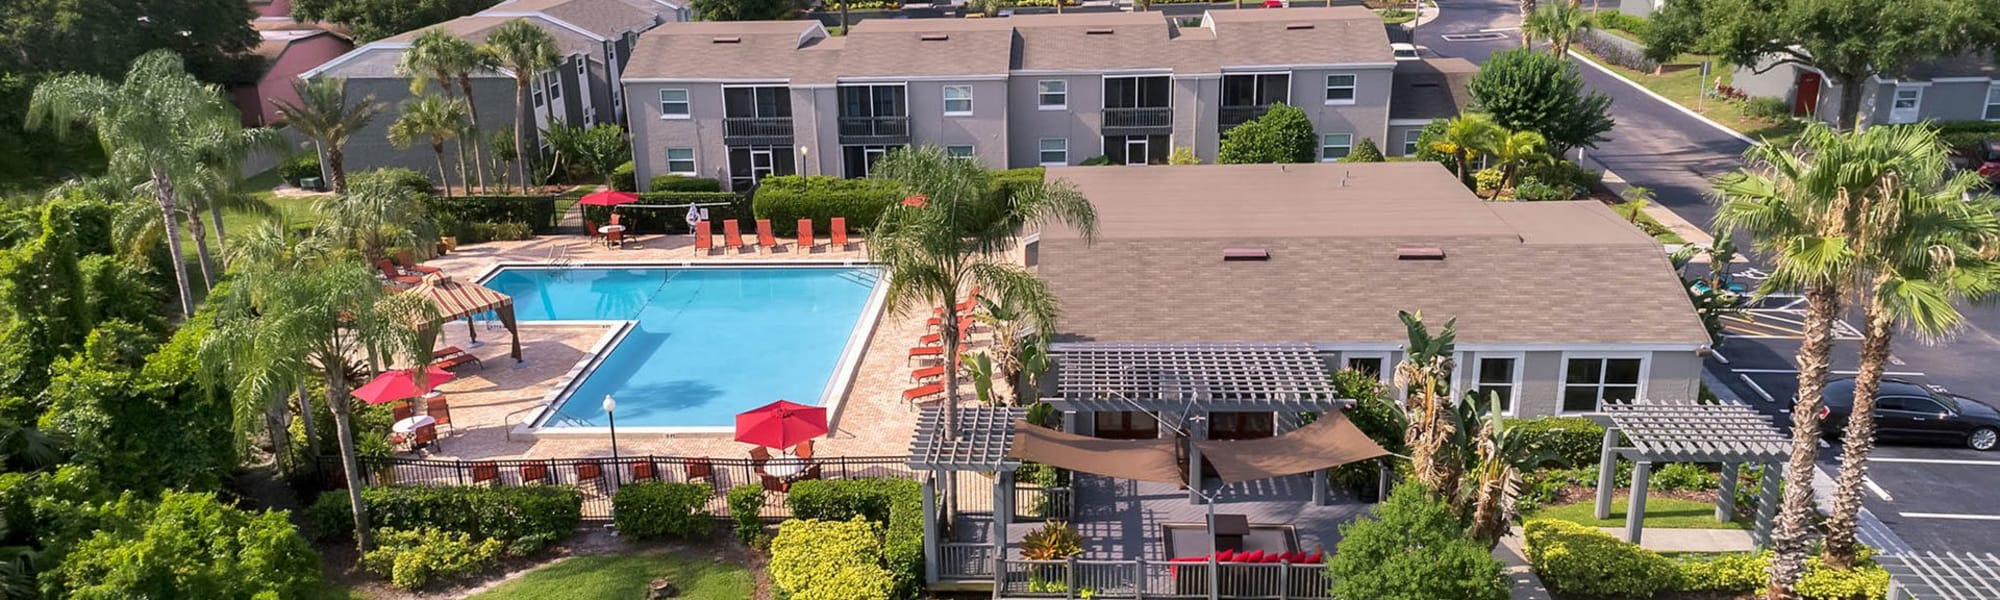 Schedule a tour to visit the apartments in Altamonte Springs